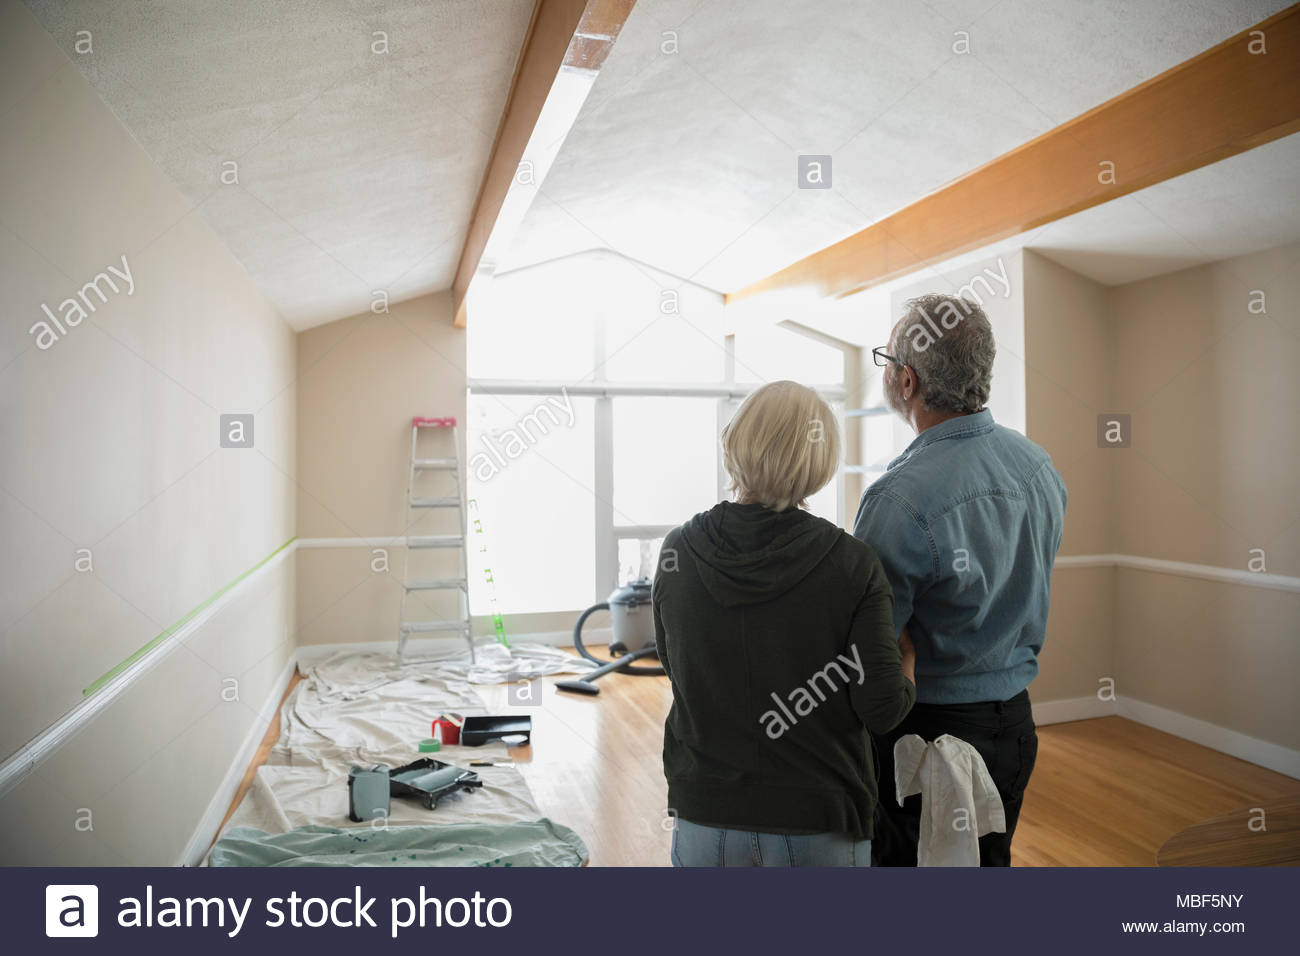 Senior couple preparing à salon de peinture, bricolage Photo Stock